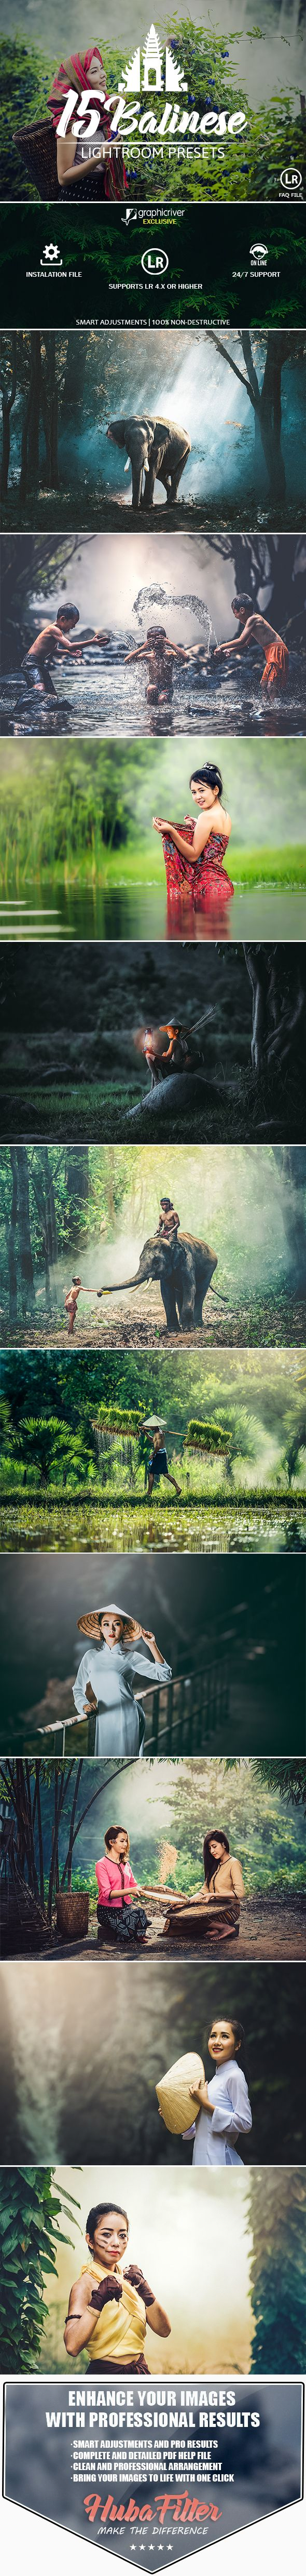 15 Balinese Pastel Premium Presets For Lightroom by HubaFilter About 15 Balinese Lightroom Presets:15 Balinese Presets for Adobe Lightroom are creatively designed to provide beautiful and effe